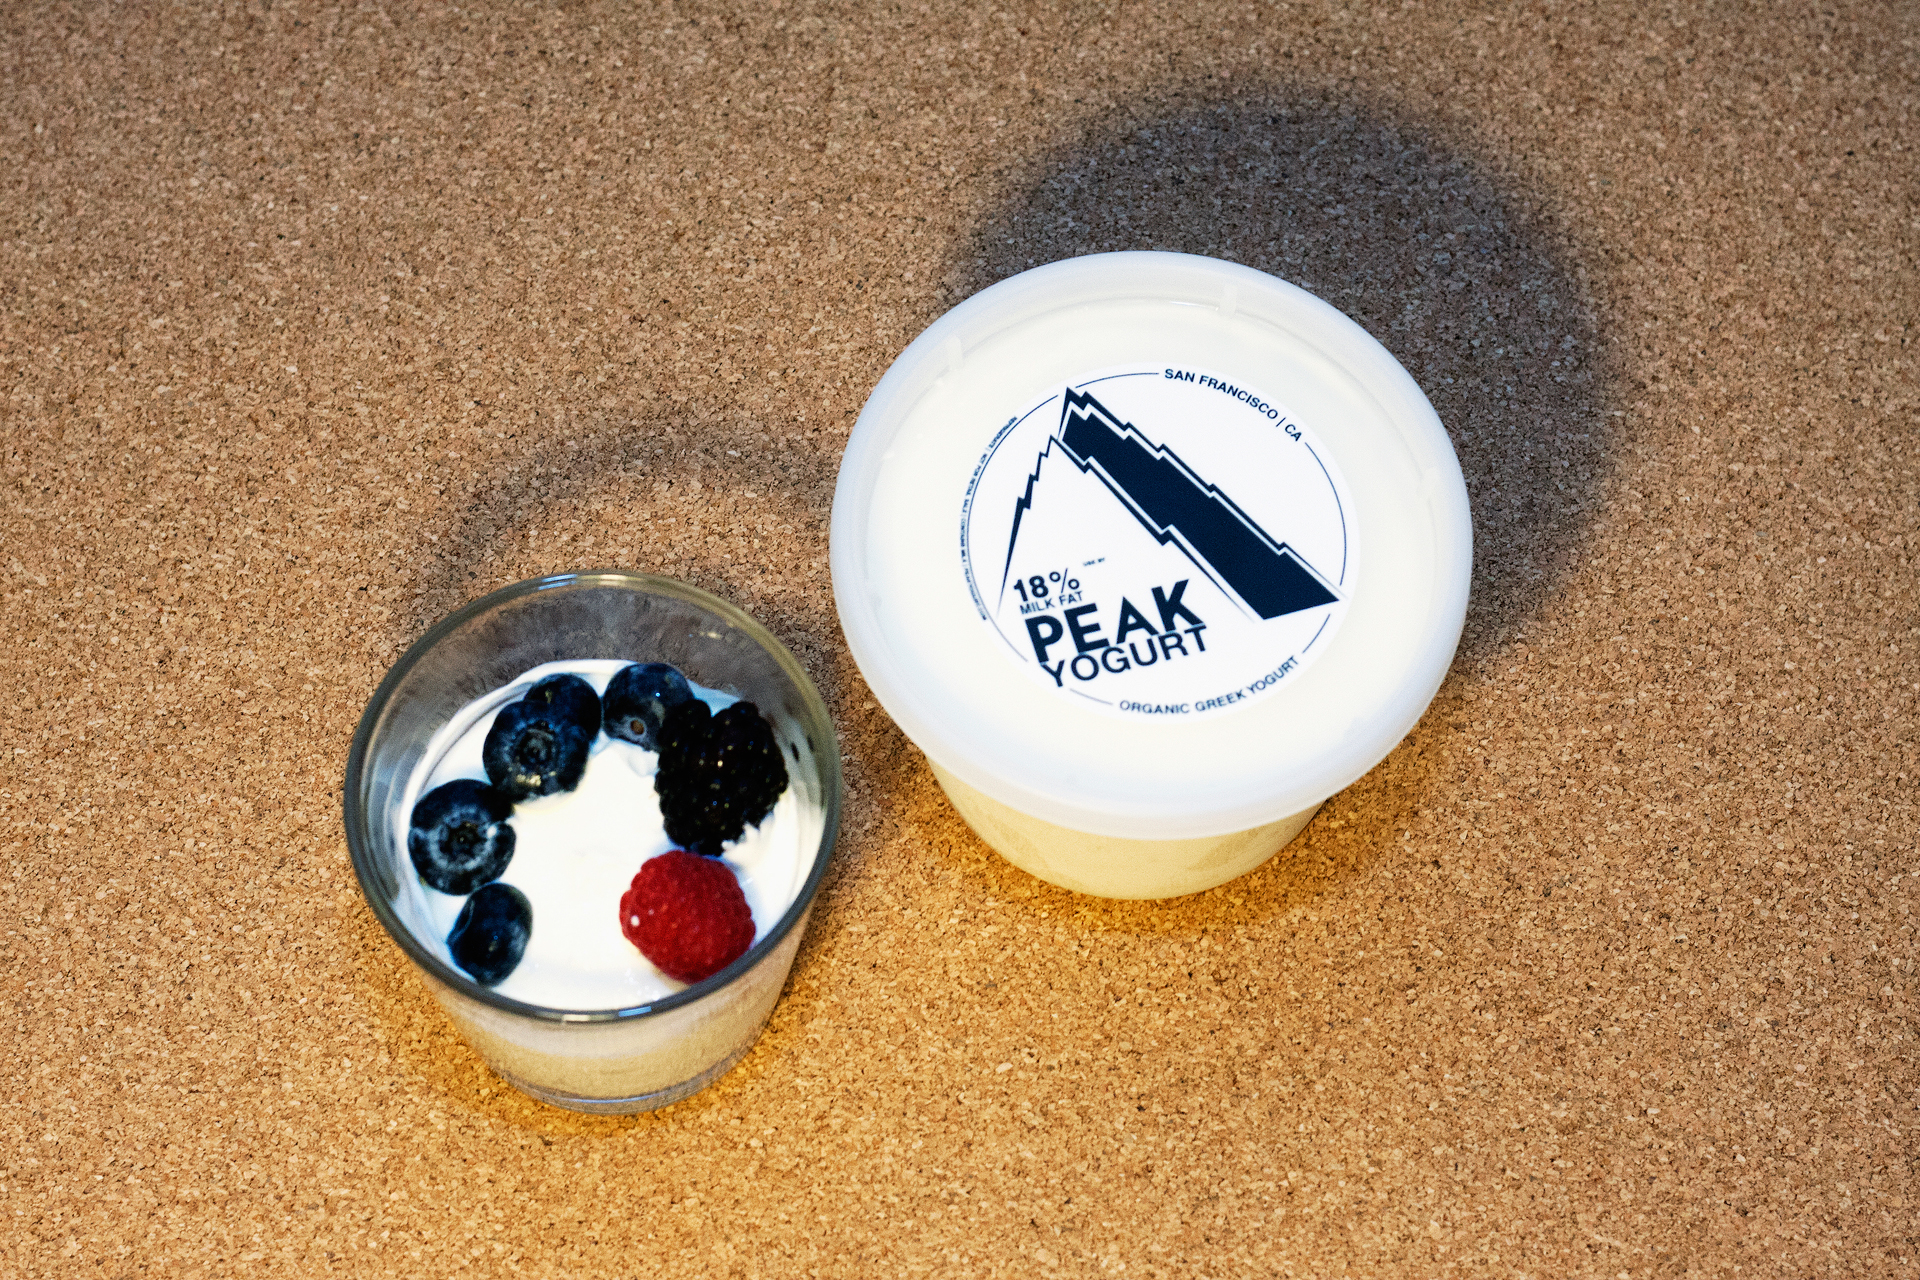 Peak Yogurt tastes great with berries or honey, says Sims, just like other yogurts.